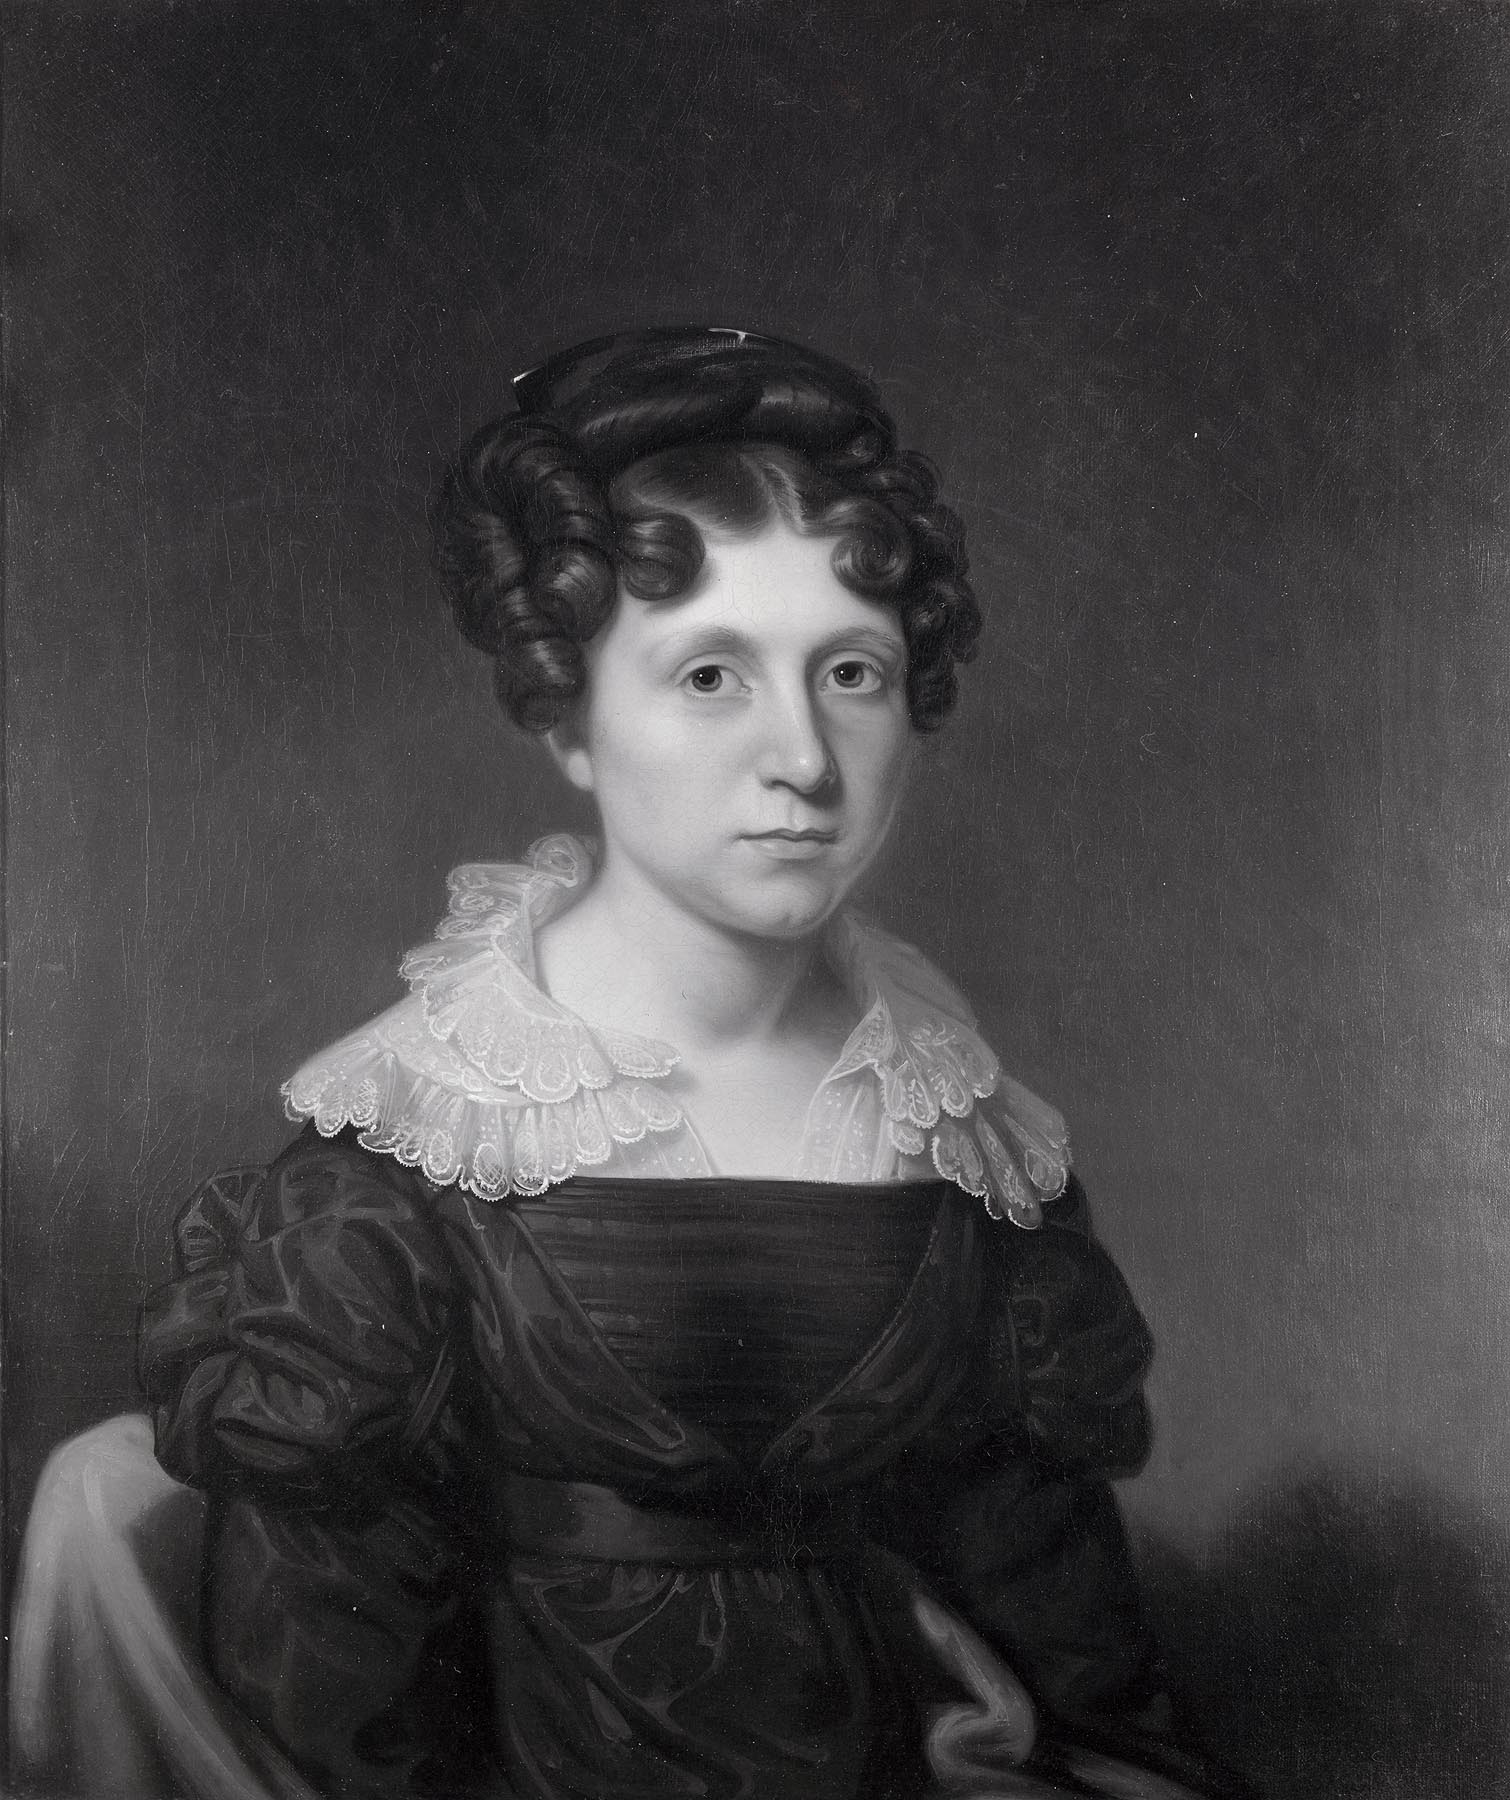 Rembrandt Peale (American, 1778-1860) Portrait of Miss Knapp, ca. 1820 Oil on canvas; 30 3/16 x 25 1/8 in. Milwaukee Art Museum, Gift of Mr. and Mrs. Maurice W. Berger, M1961.56 Photo by P. Richard Eels